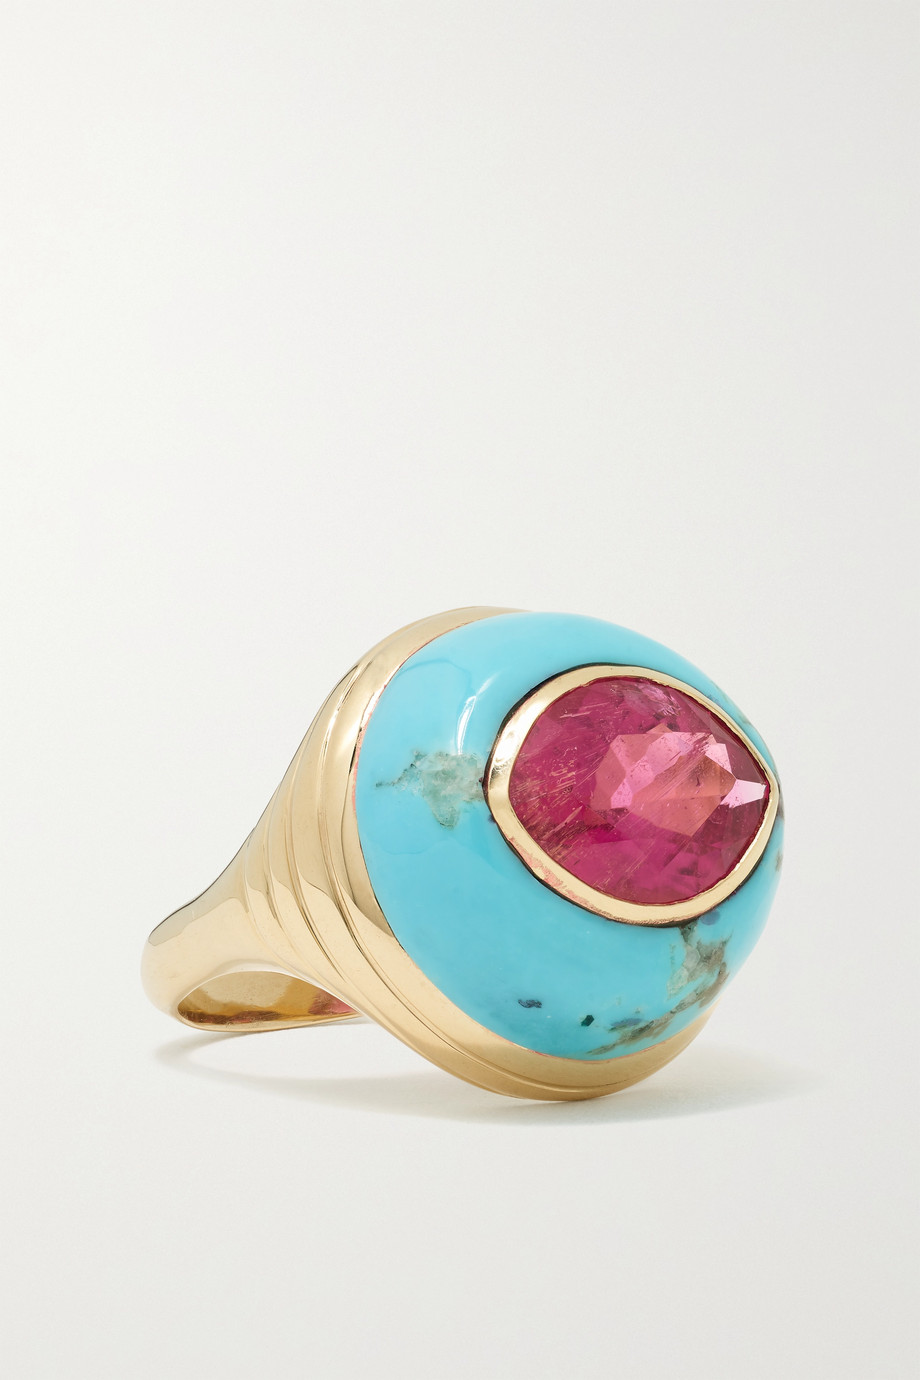 Retrouvaí Lollipop 14-karat gold, turquoise and rubellite ring